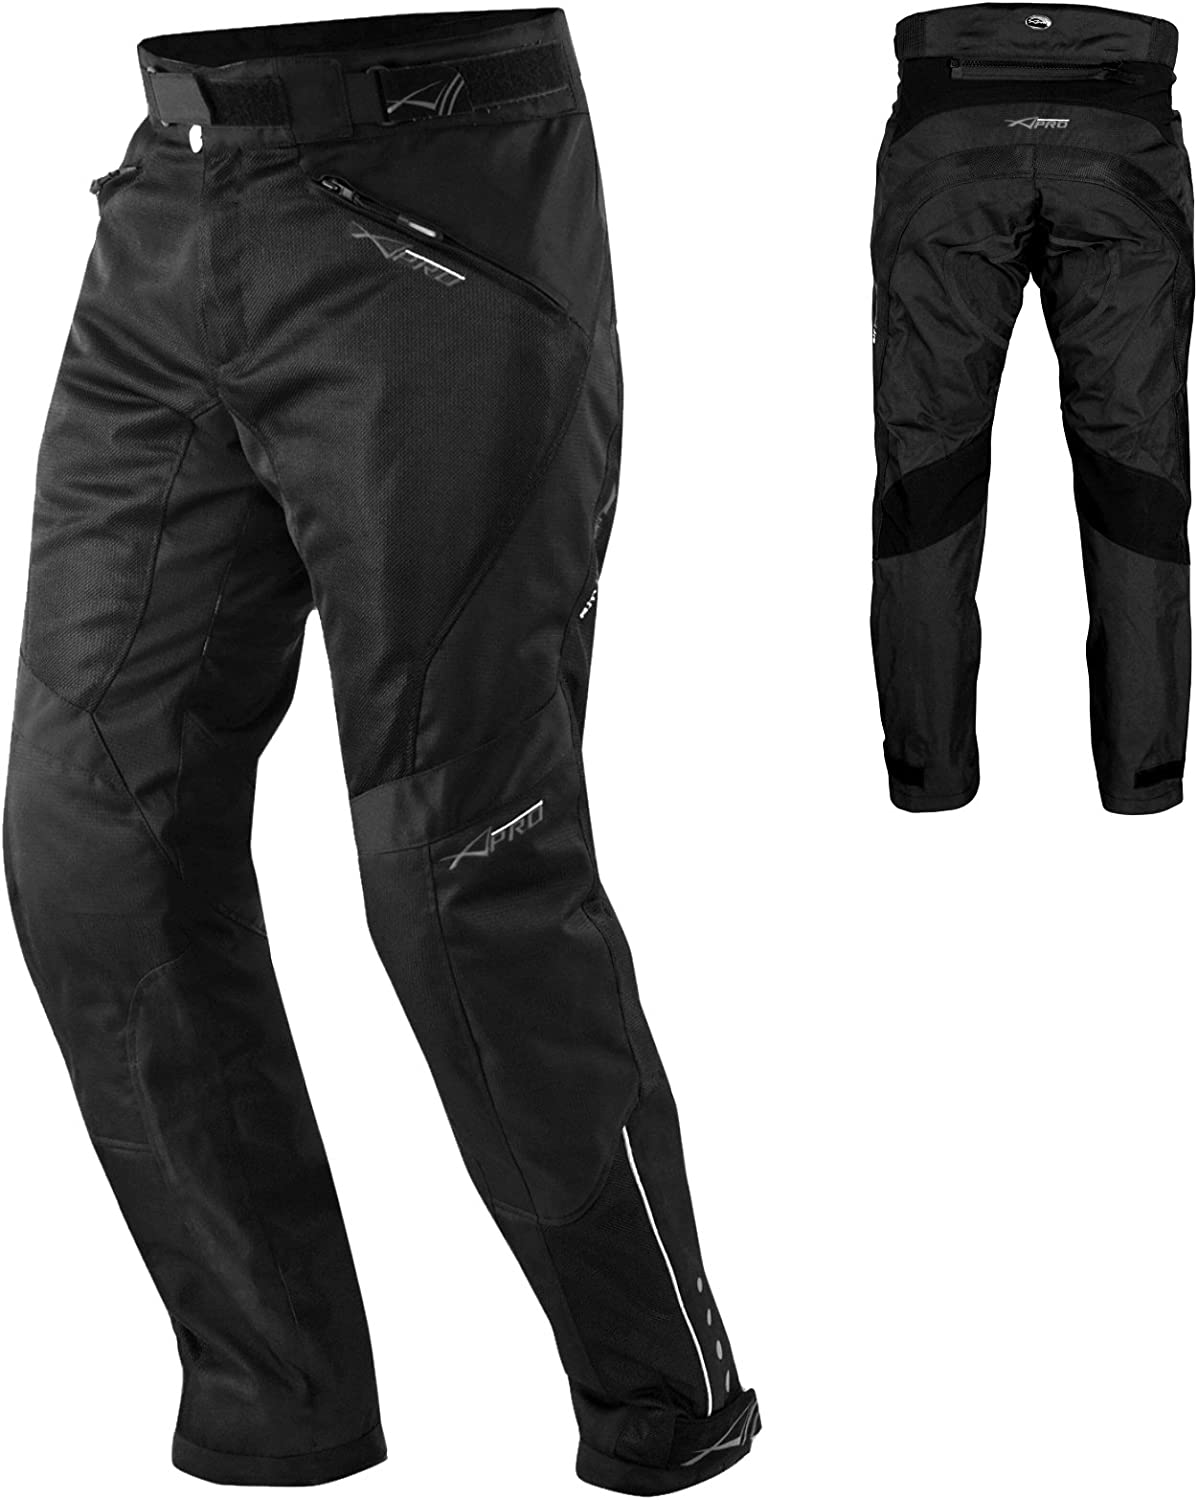 CE Armour Mesh Summer Lady Trouser Motorbike Motorcycle Pants Sonicmoto Black 26